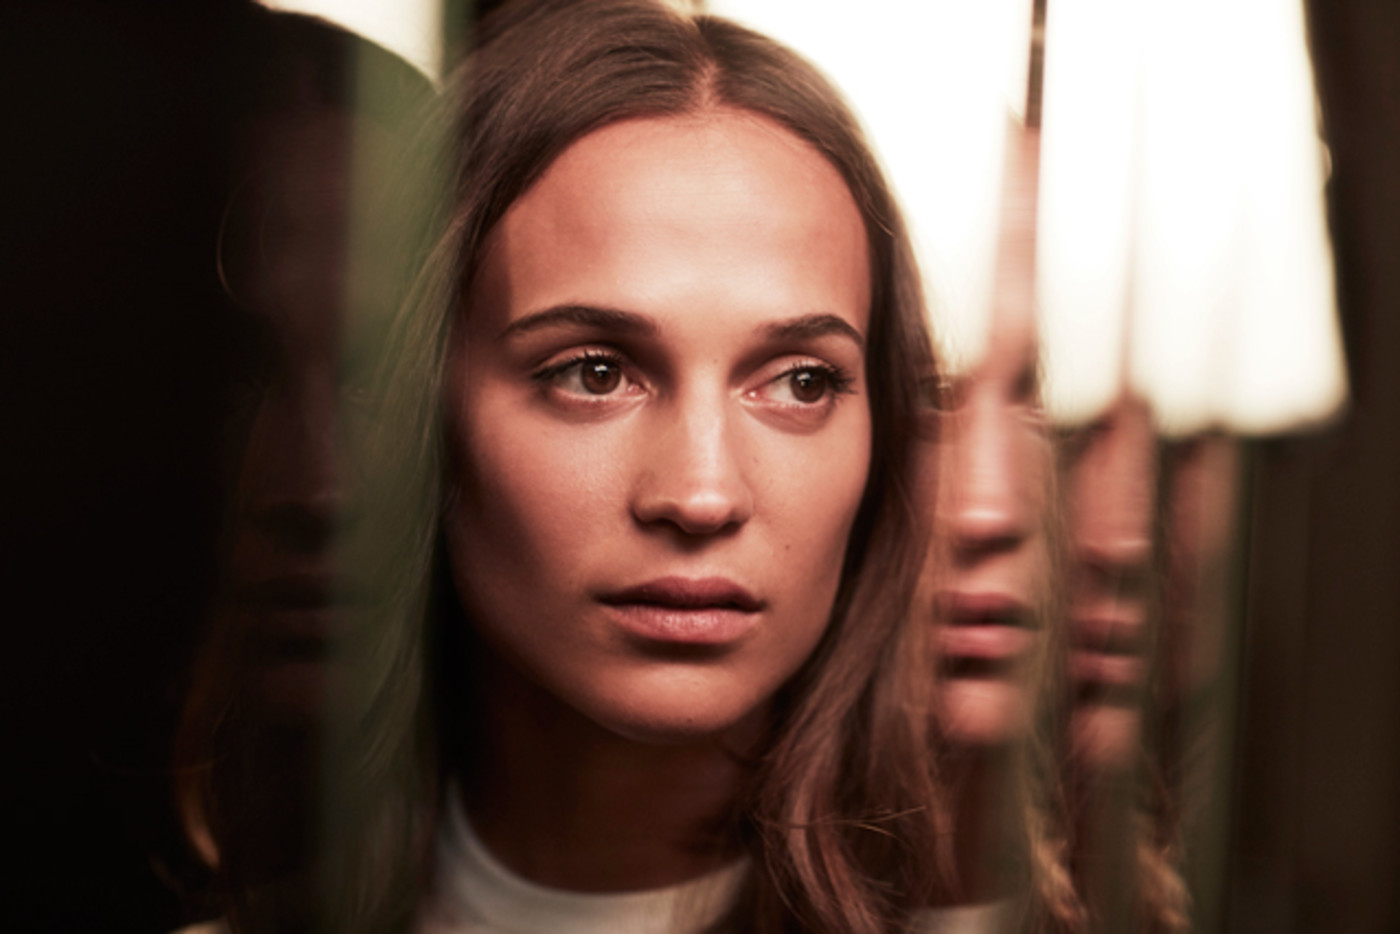 Alicia Vikander poses for a portrait during TIFF 2017